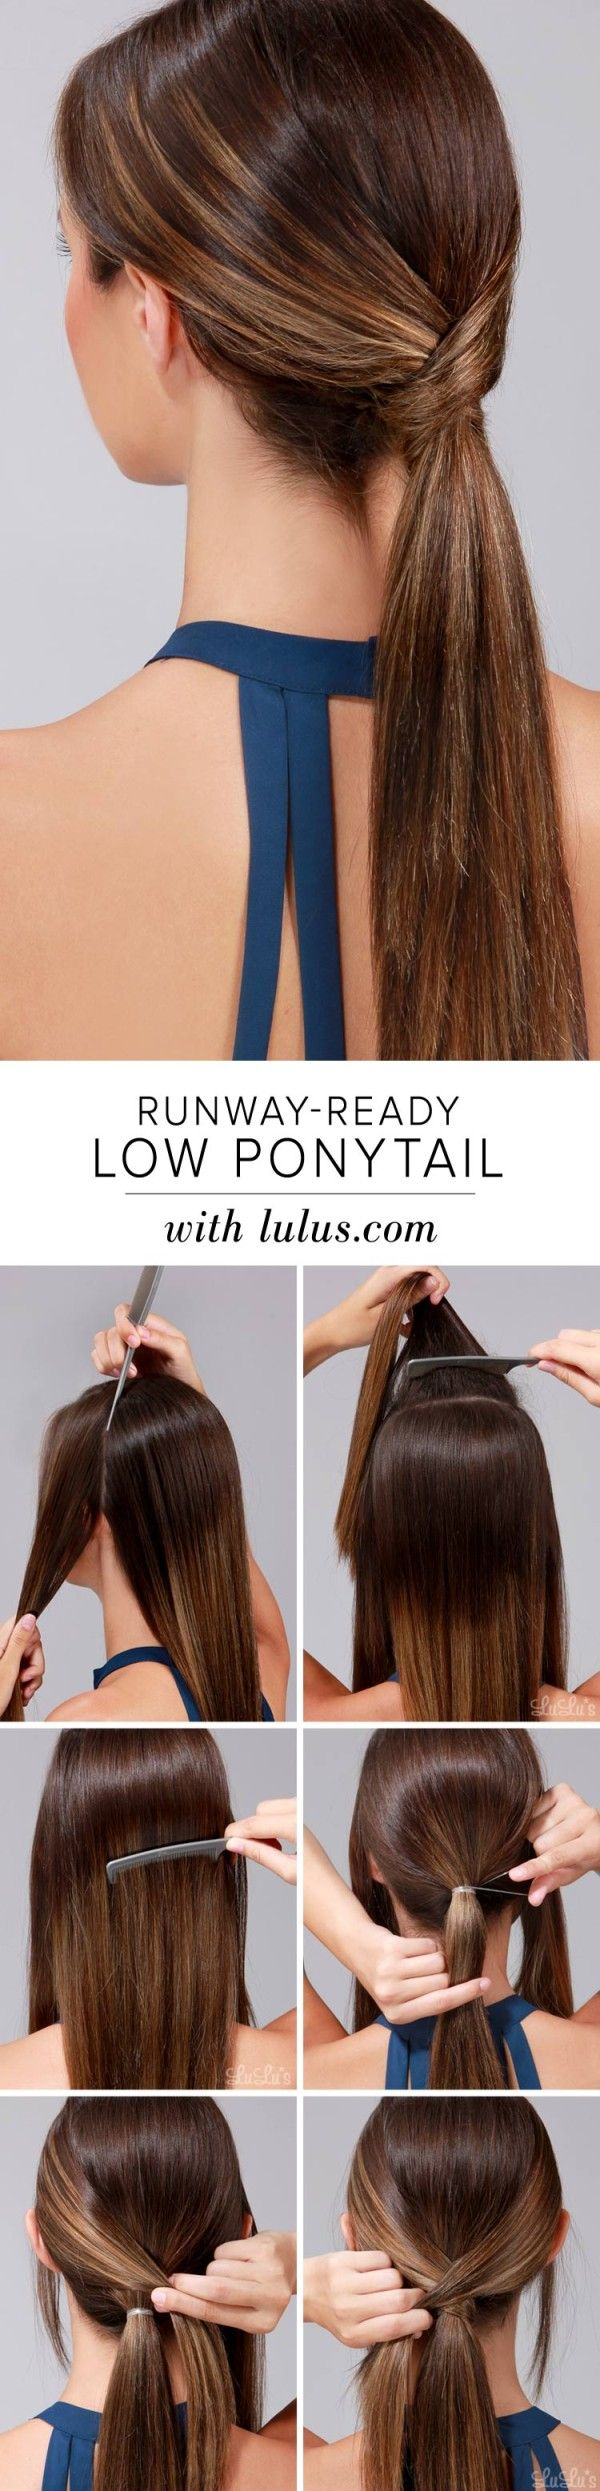 The best images about hair for hiro on pinterest best